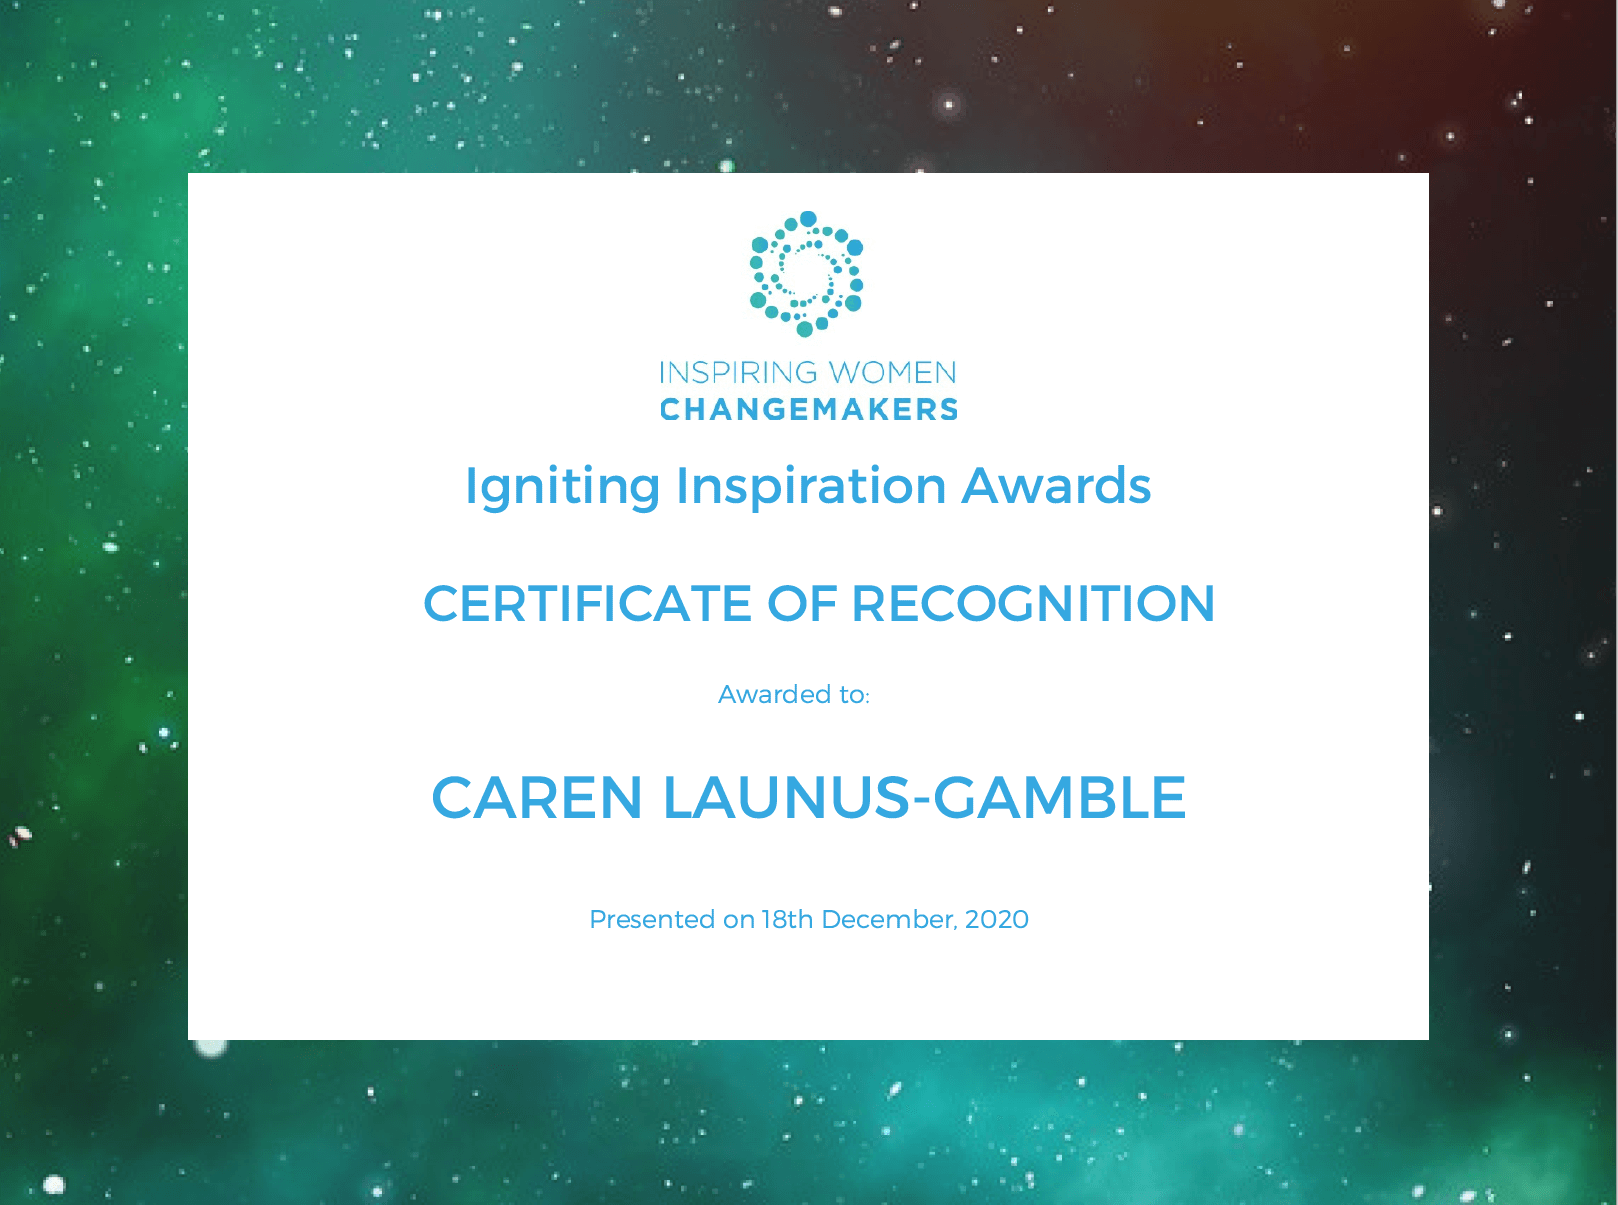 INSPIRING WOMEN CHANGEMAKERS Igniting Inspiration Awards CERTIFICATE OF RECOGNITION Awarded to CAREN LAUNUS GAMBLE presented on 18th December, 2020